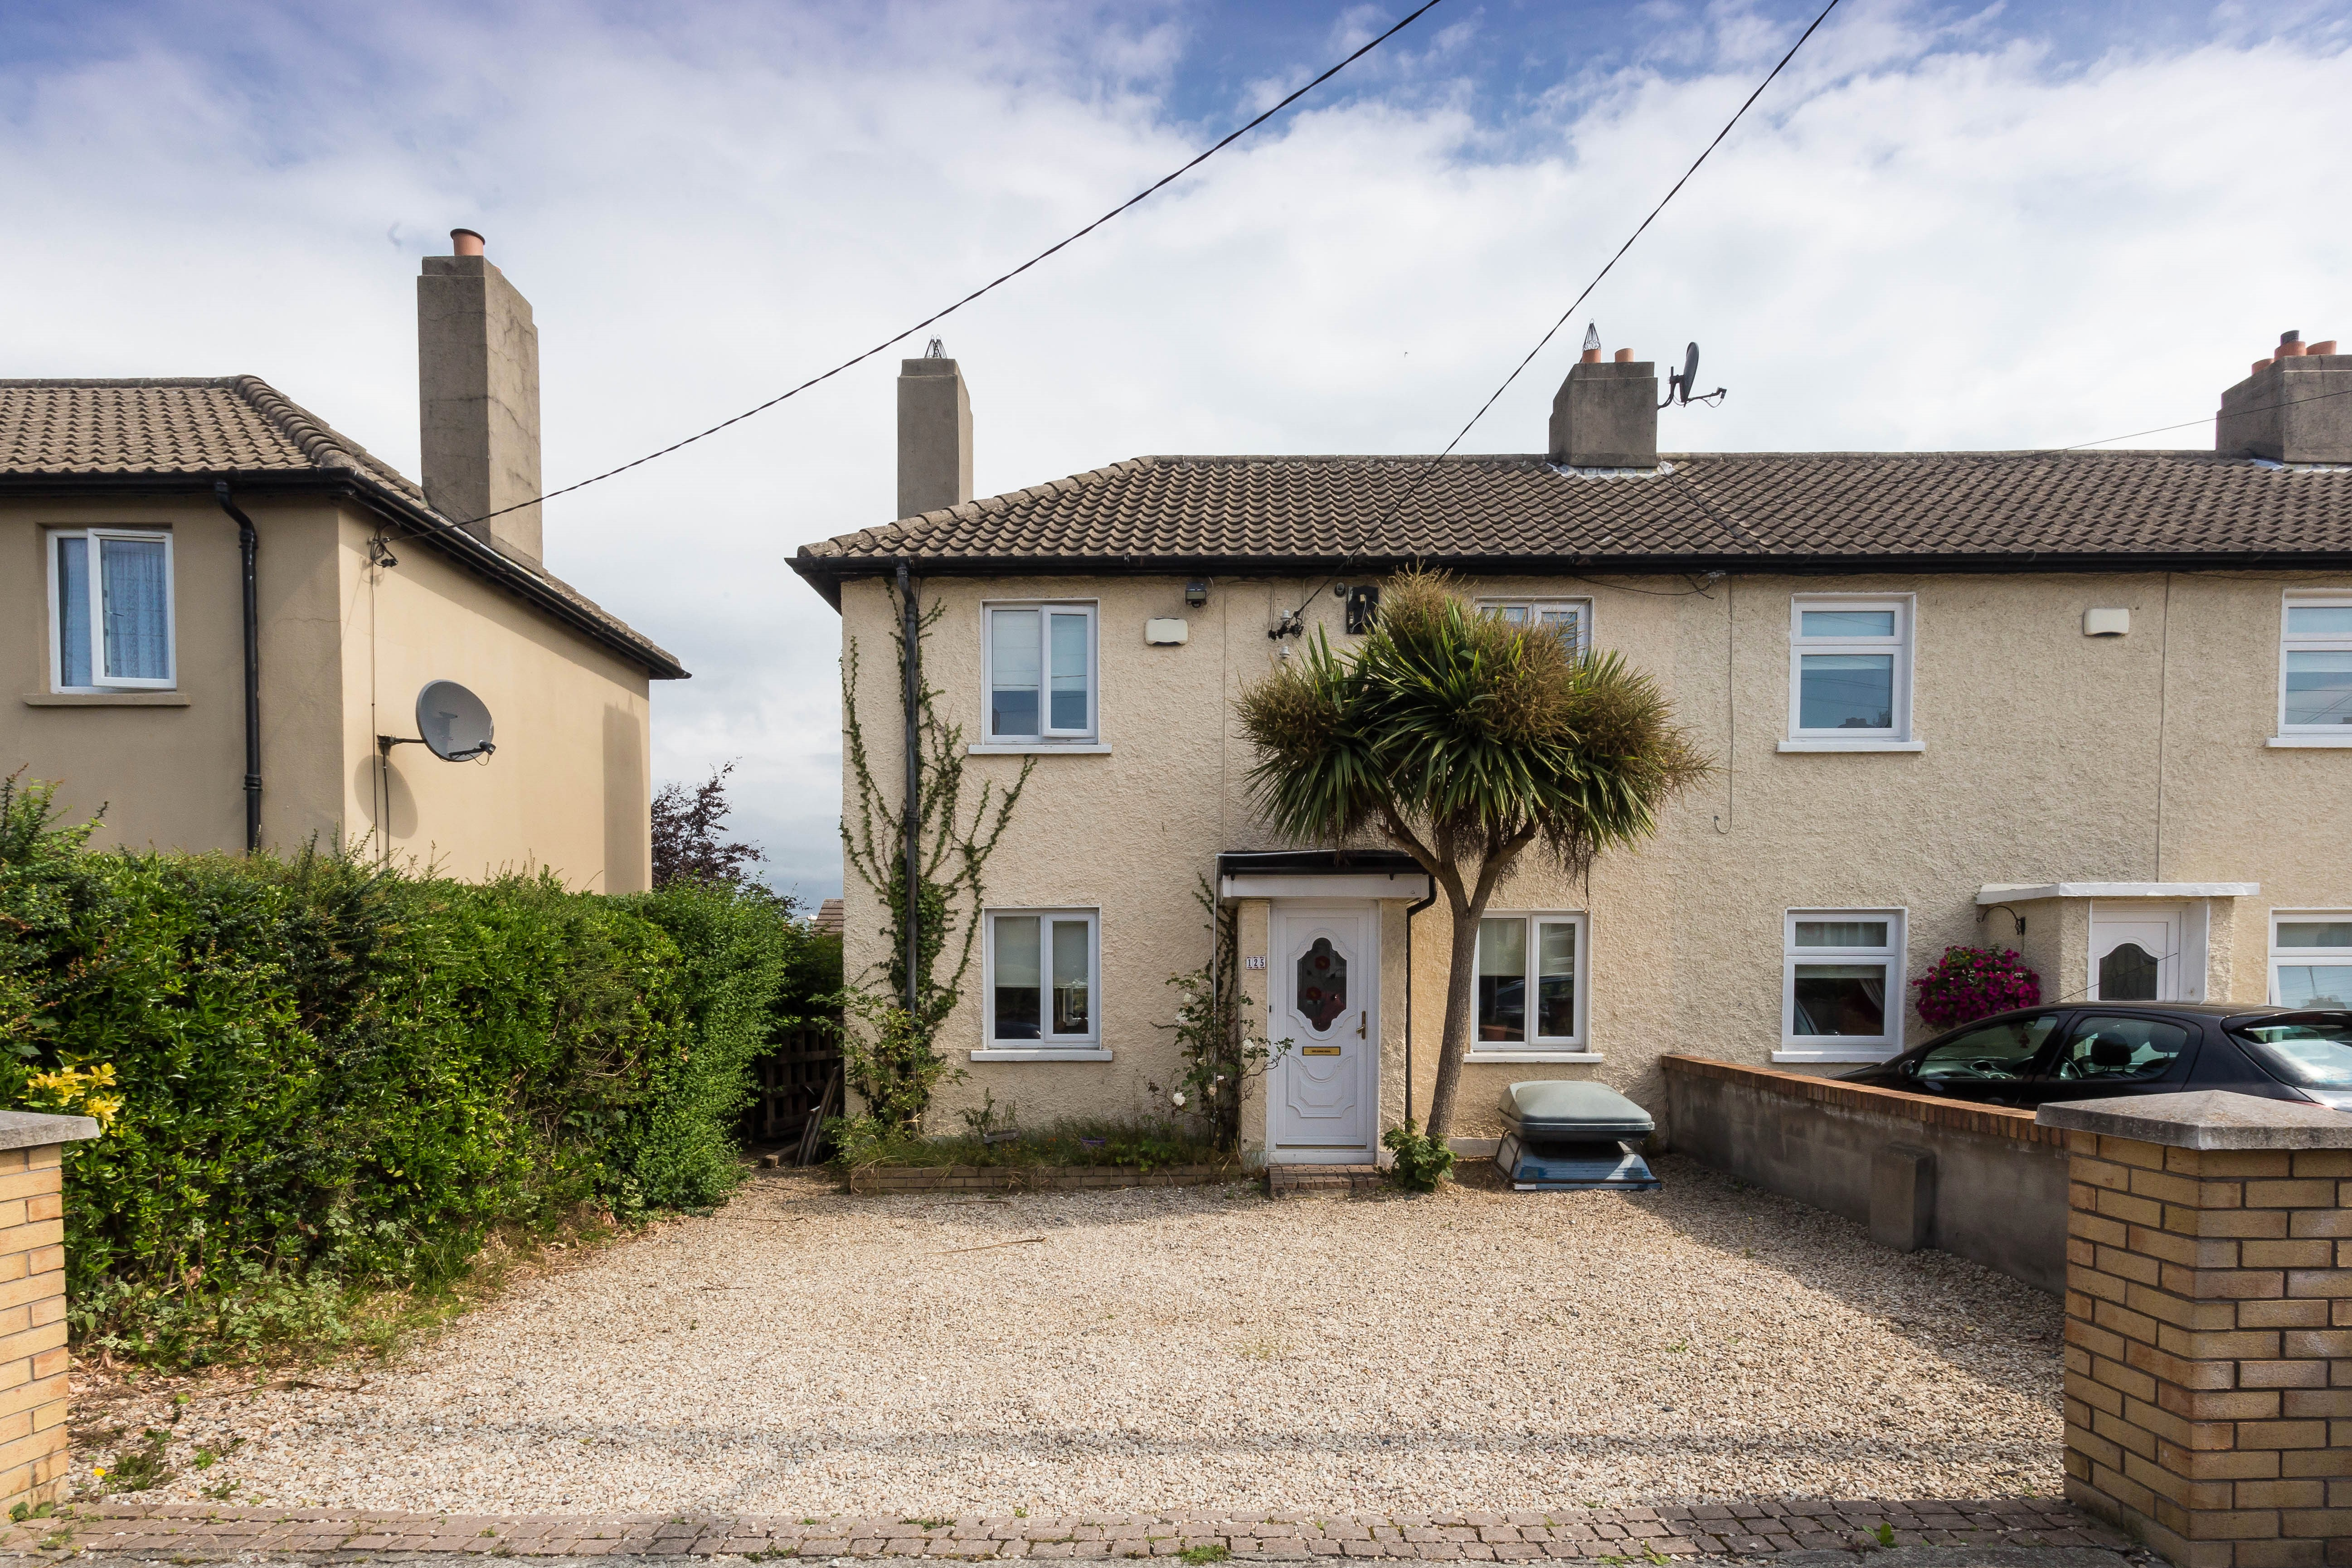 125 St, Patrick's Crescent, Monkstown, Co Dublin